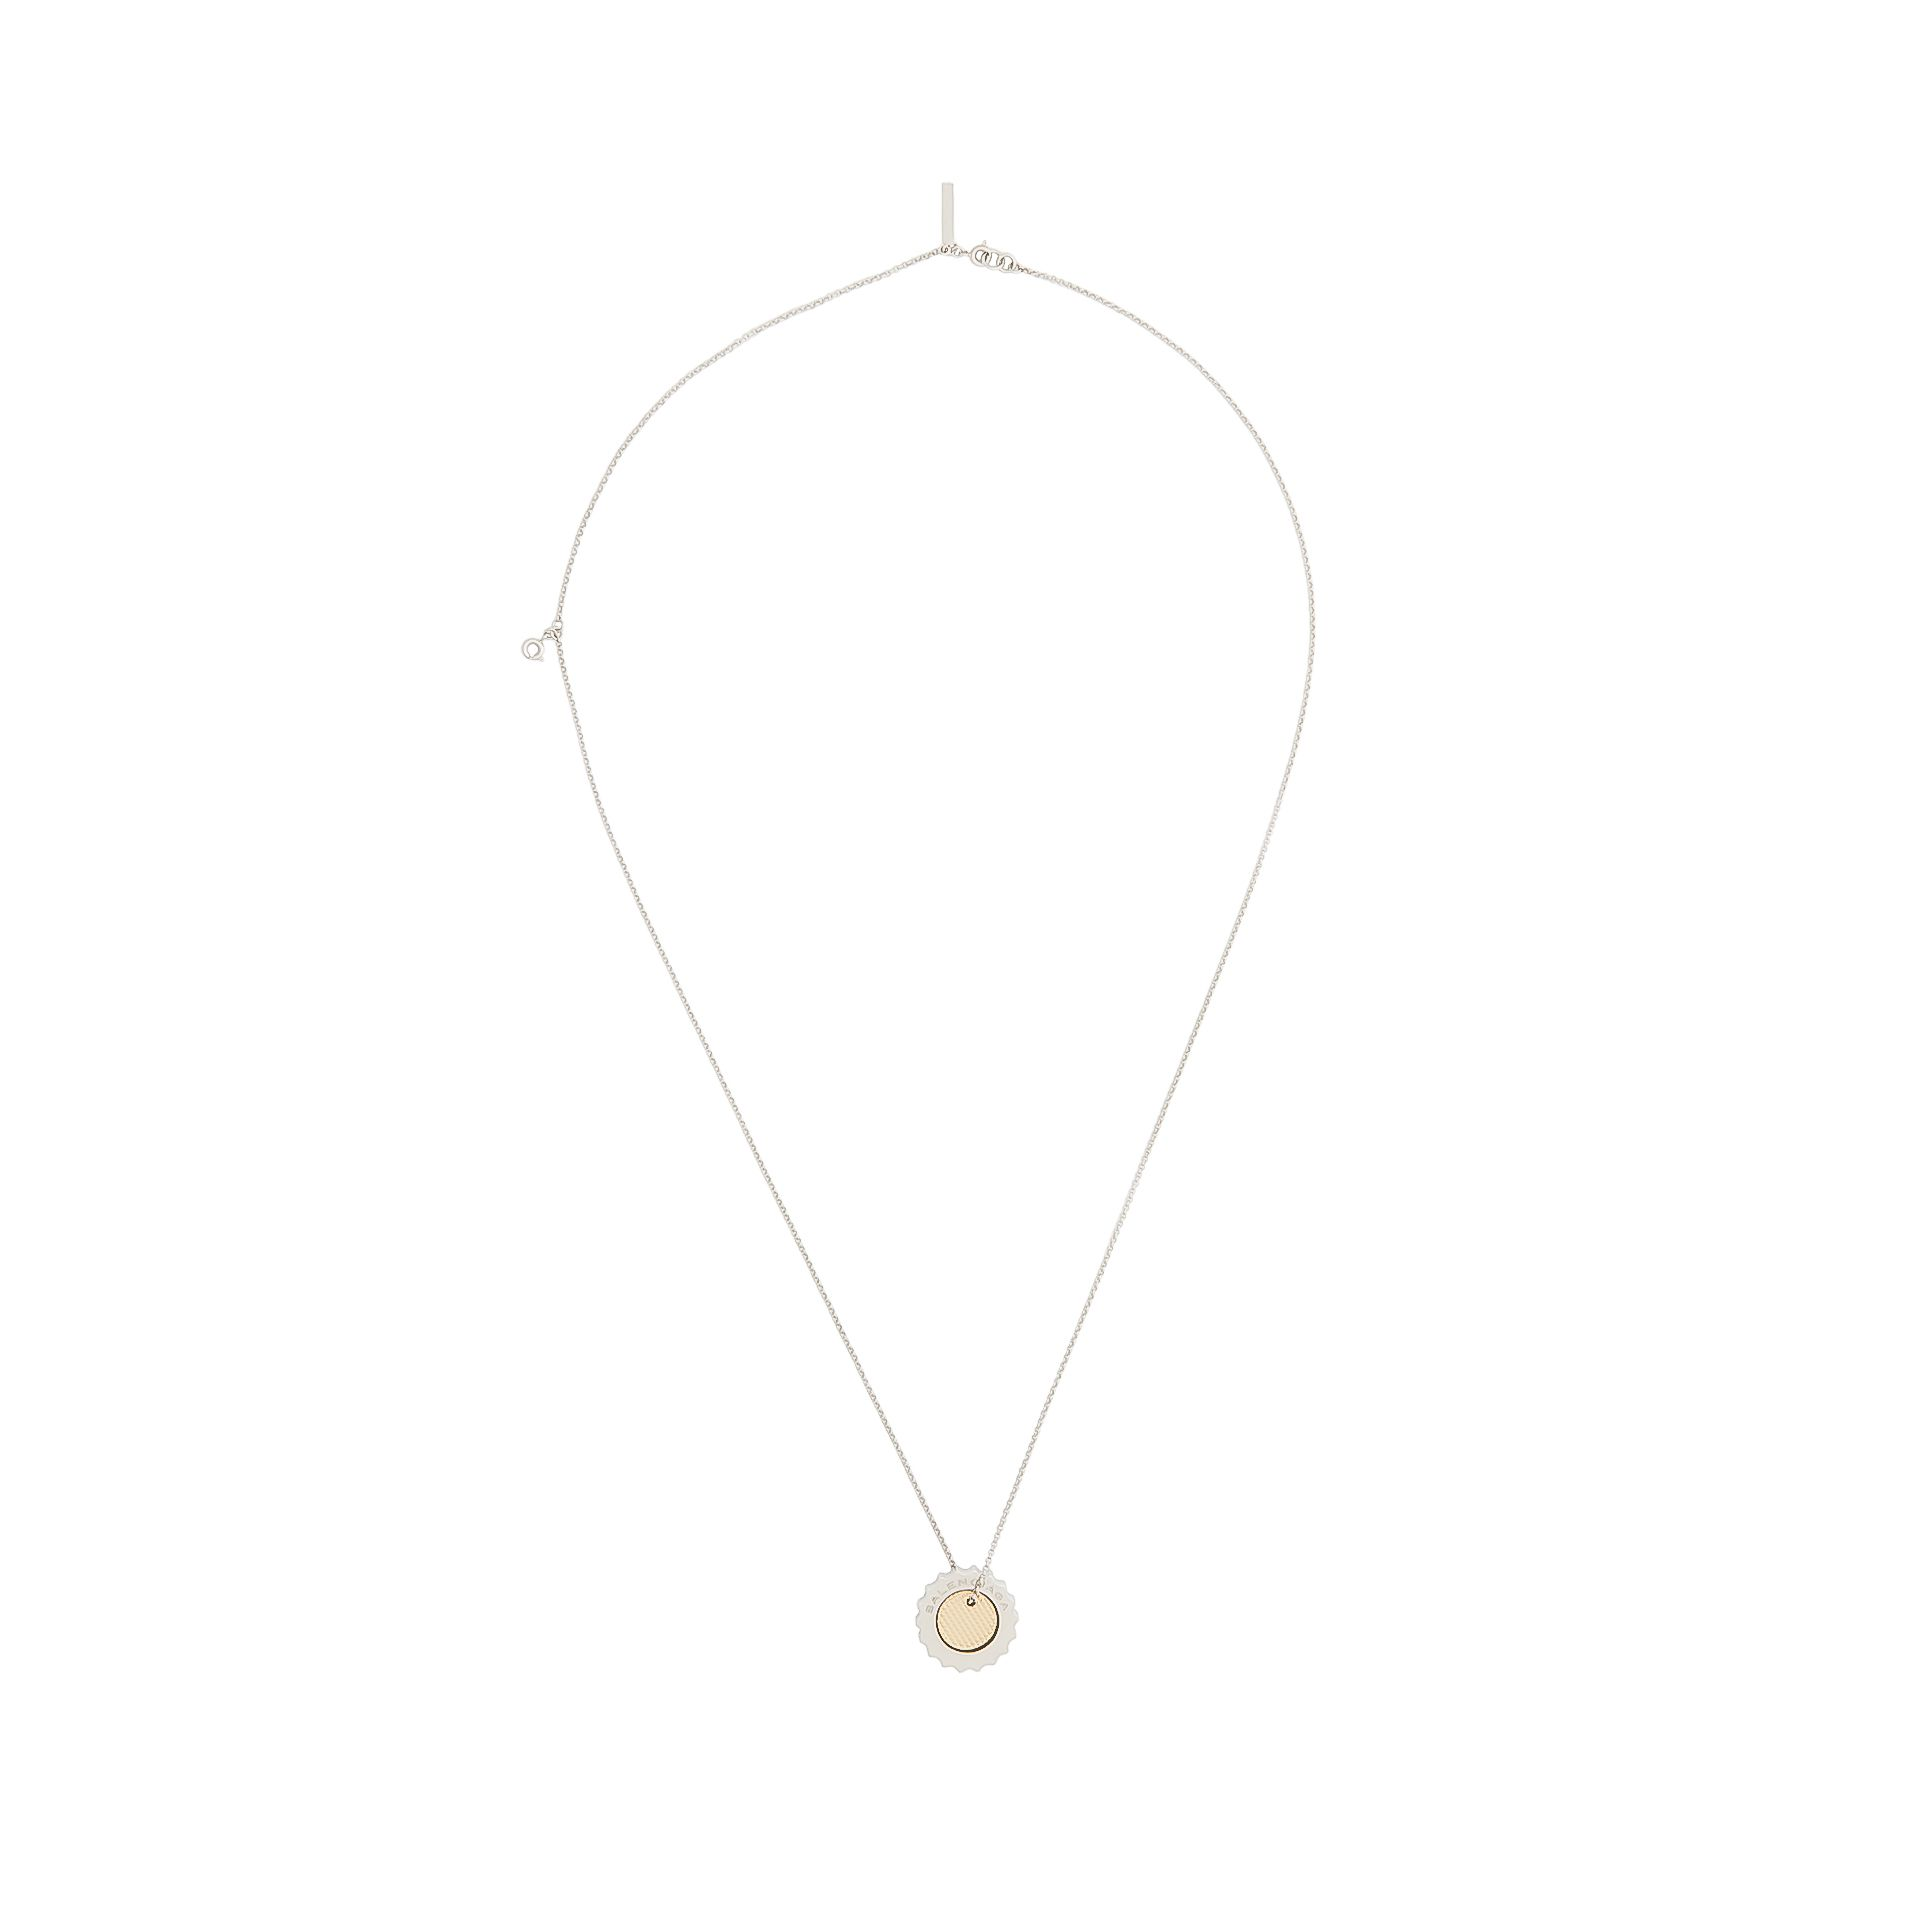 Balenciaga Pendant Classique Balenciaga - Necklaces Women - Jewelry Balenciaga